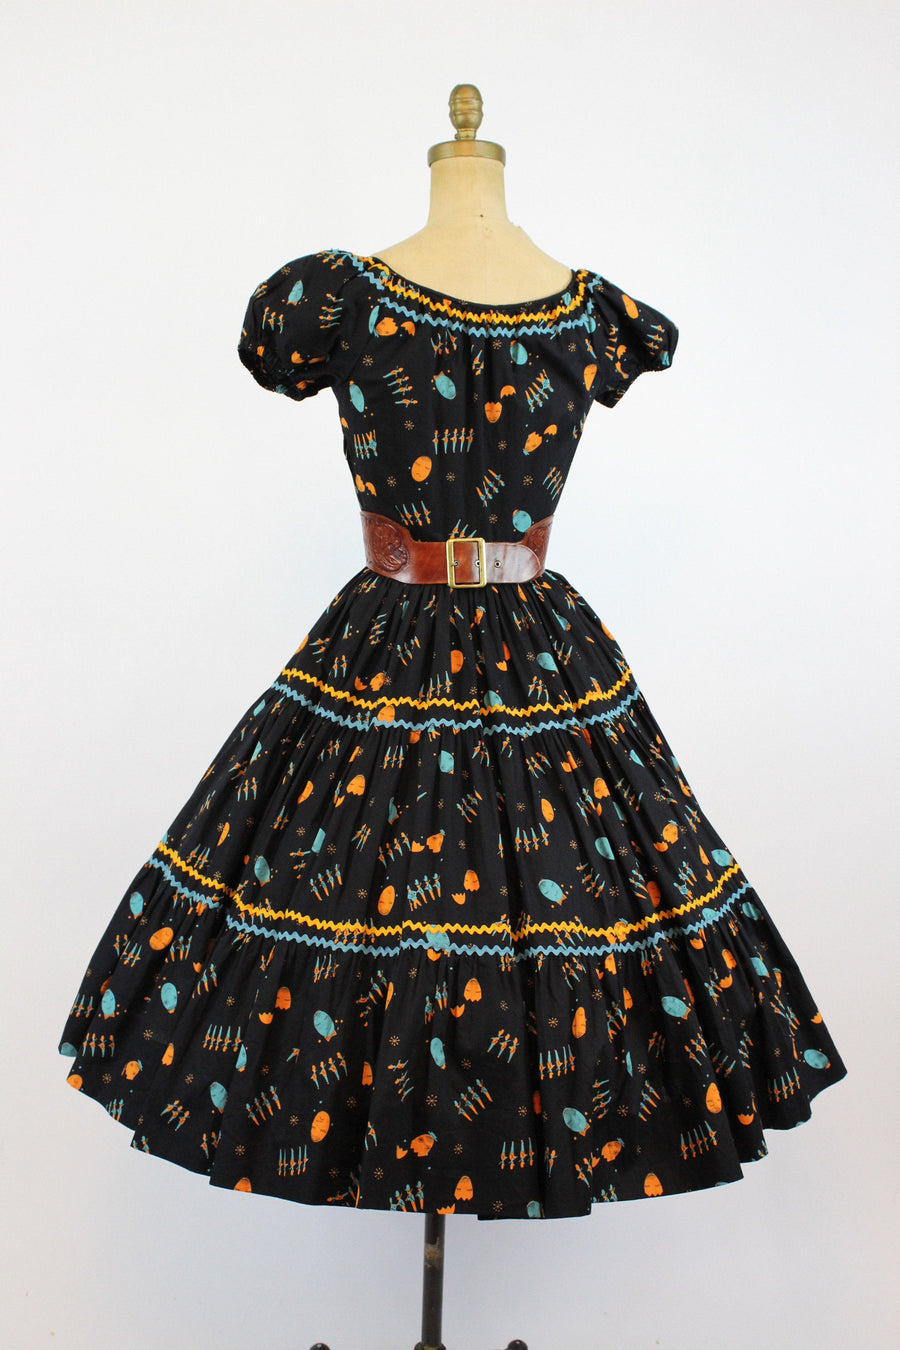 1950s Humpty Dumpty novelty dress xs | vintage cotton peasant dress | new in